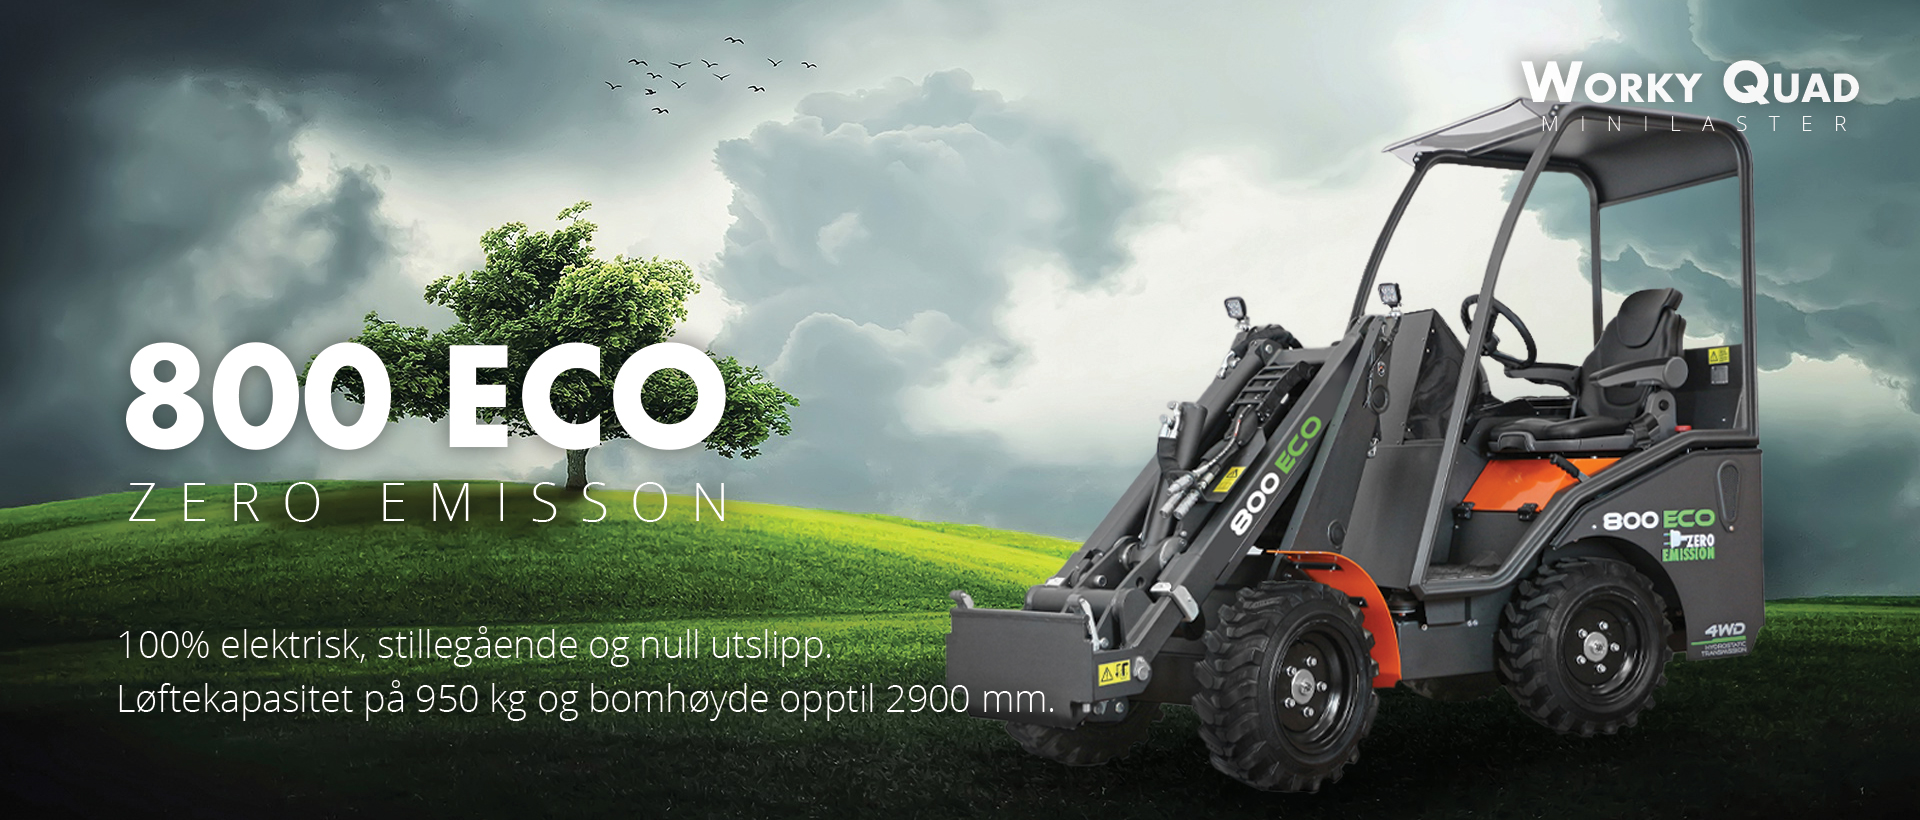 Worky Quad minilaster 800 Eco